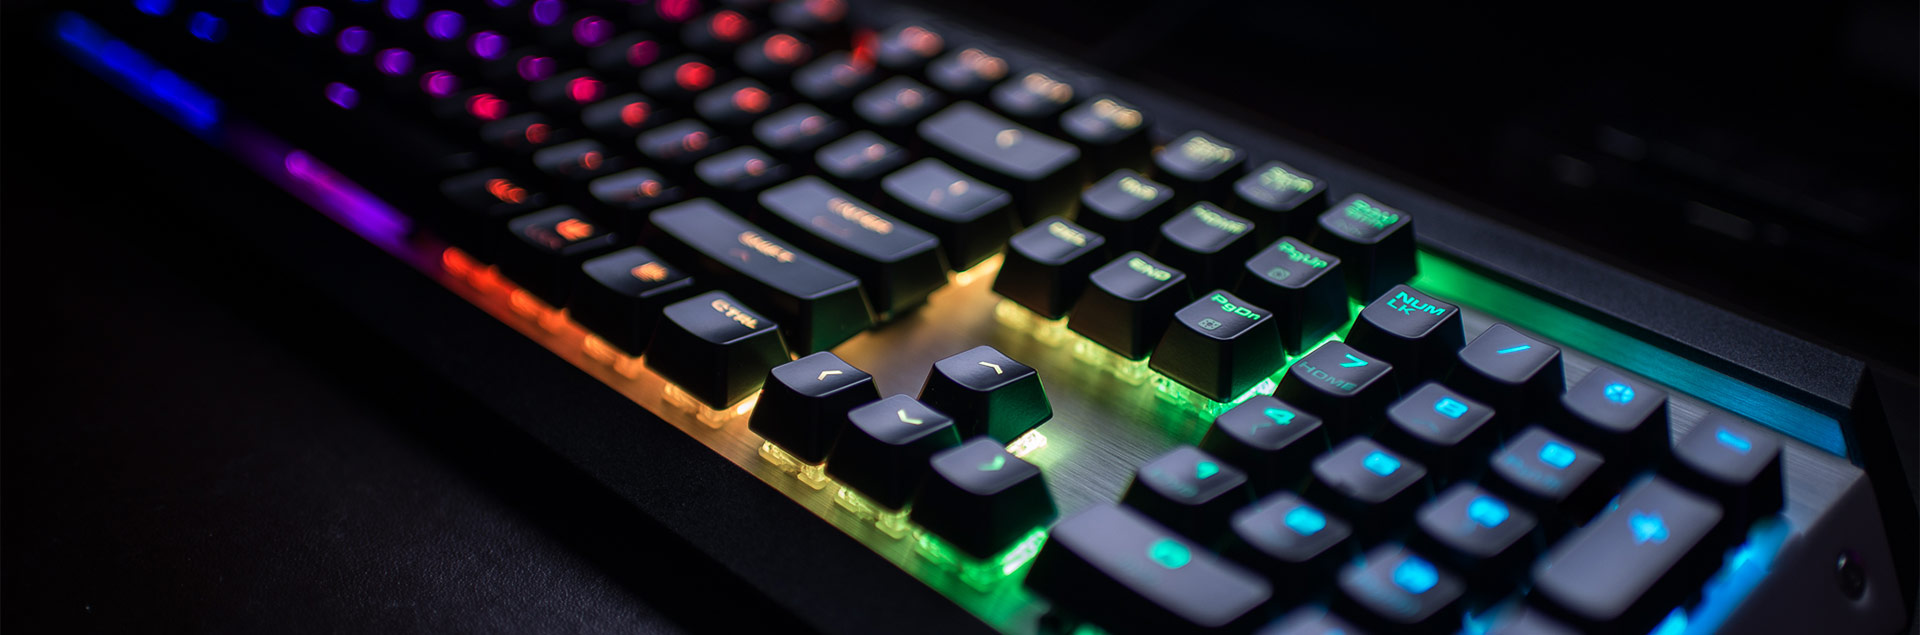 Tastatur Test Archive Game2gether Mouse Terminator X3 Cougar Attack Rgb Review